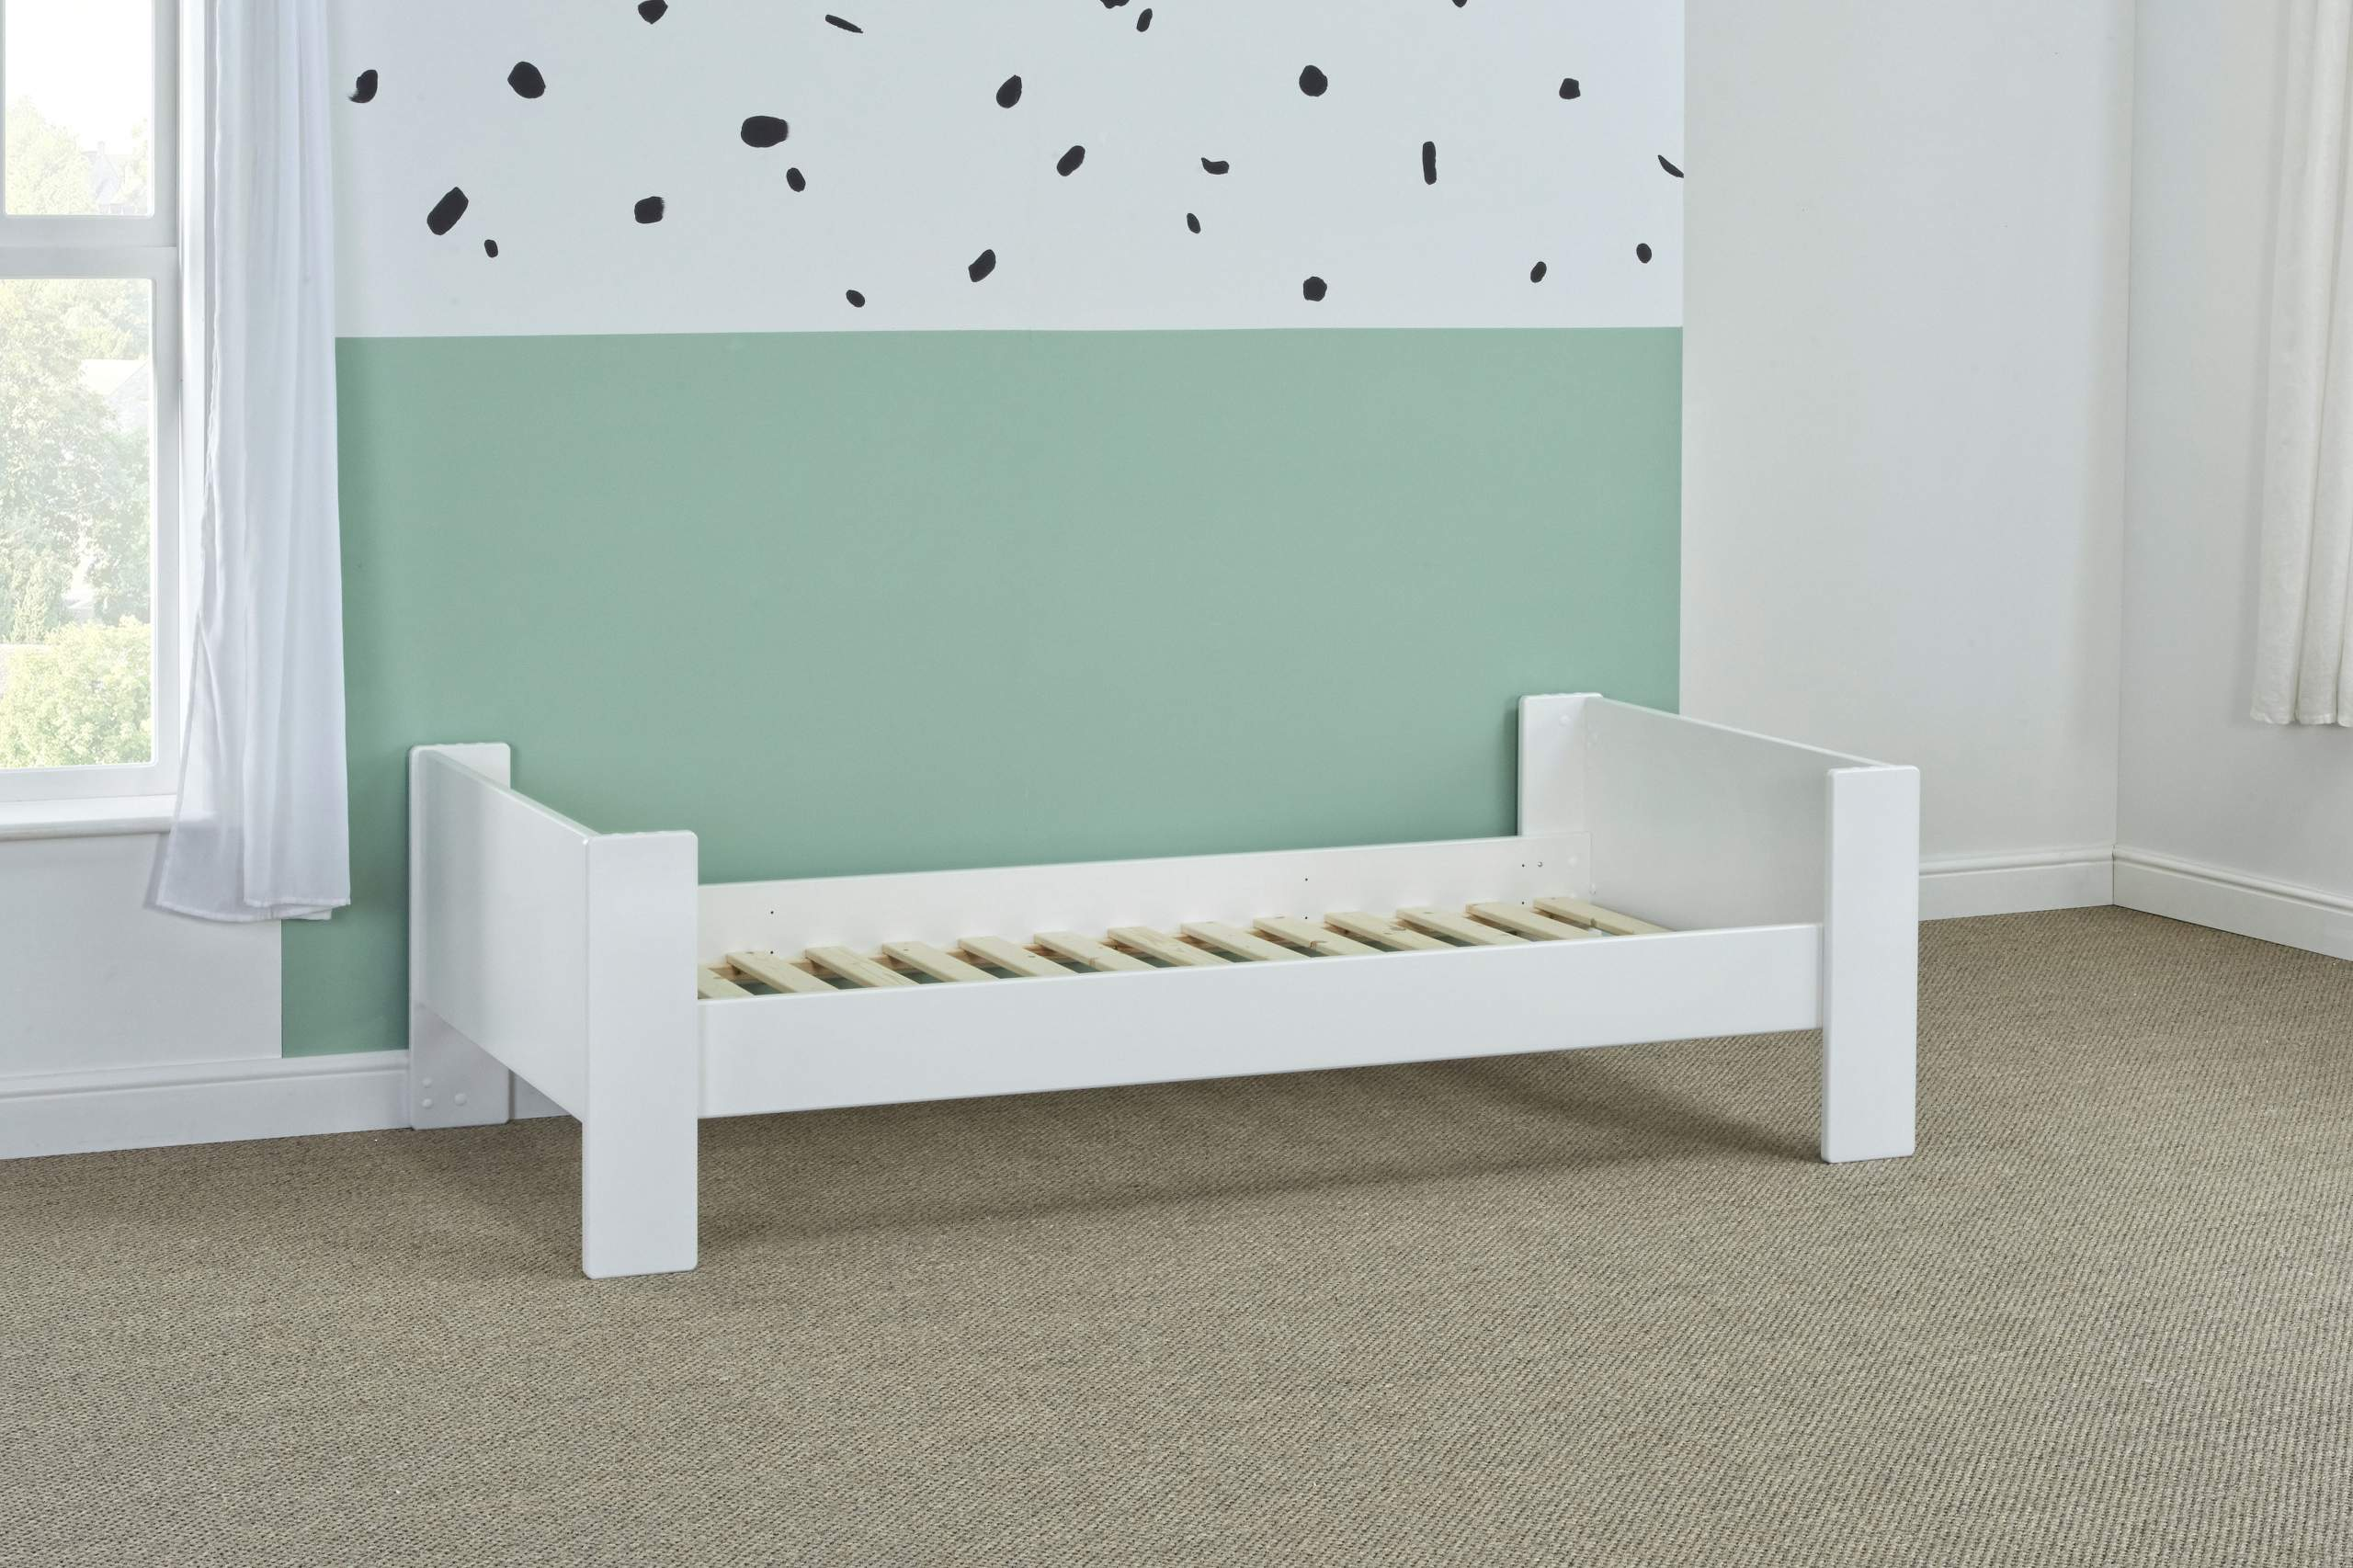 Bloc single bed - naked angle